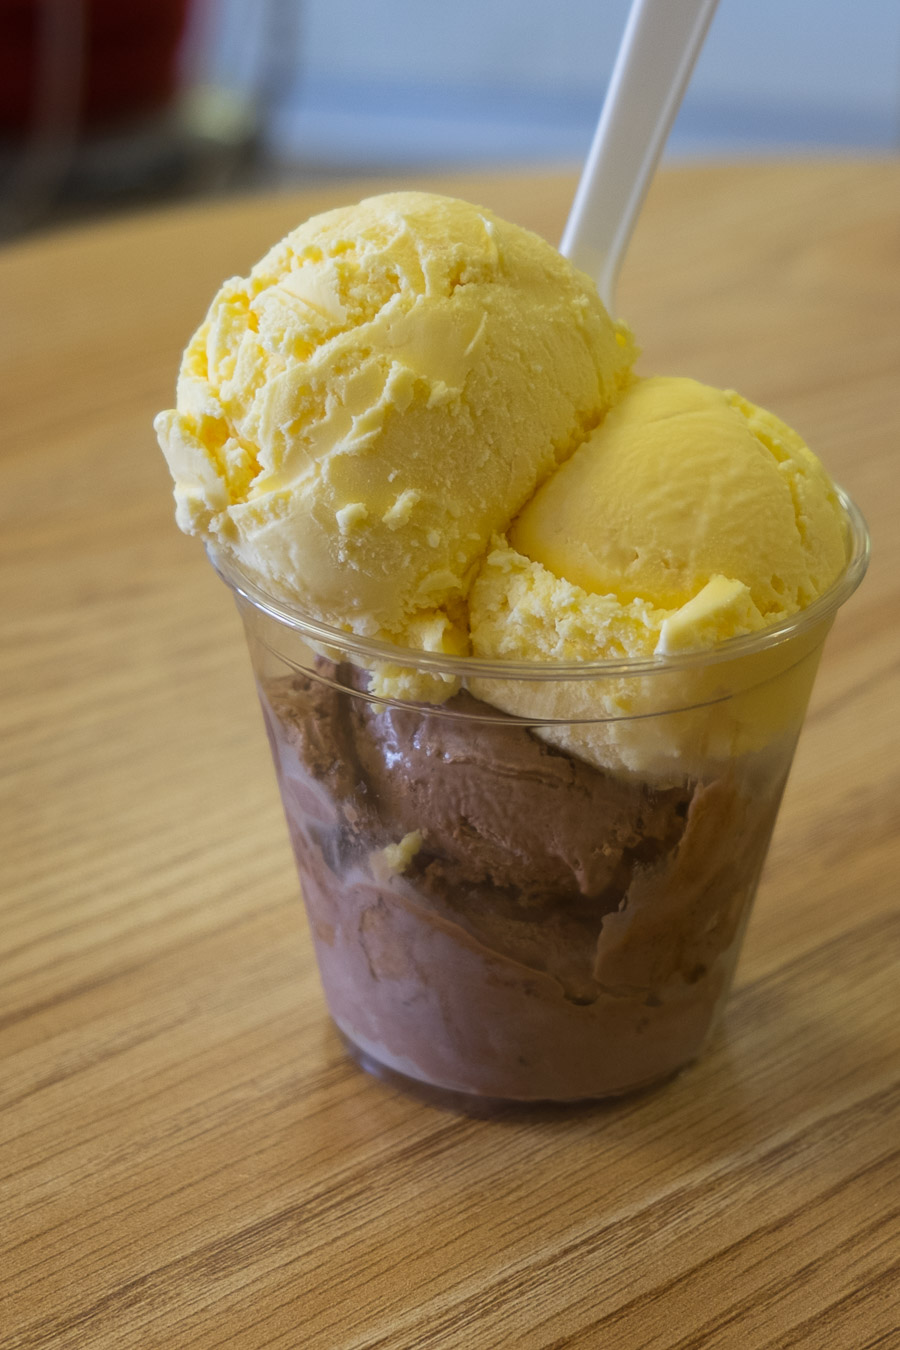 Two flavours of ice cream from Peter's Cafe - chocolate and custard.